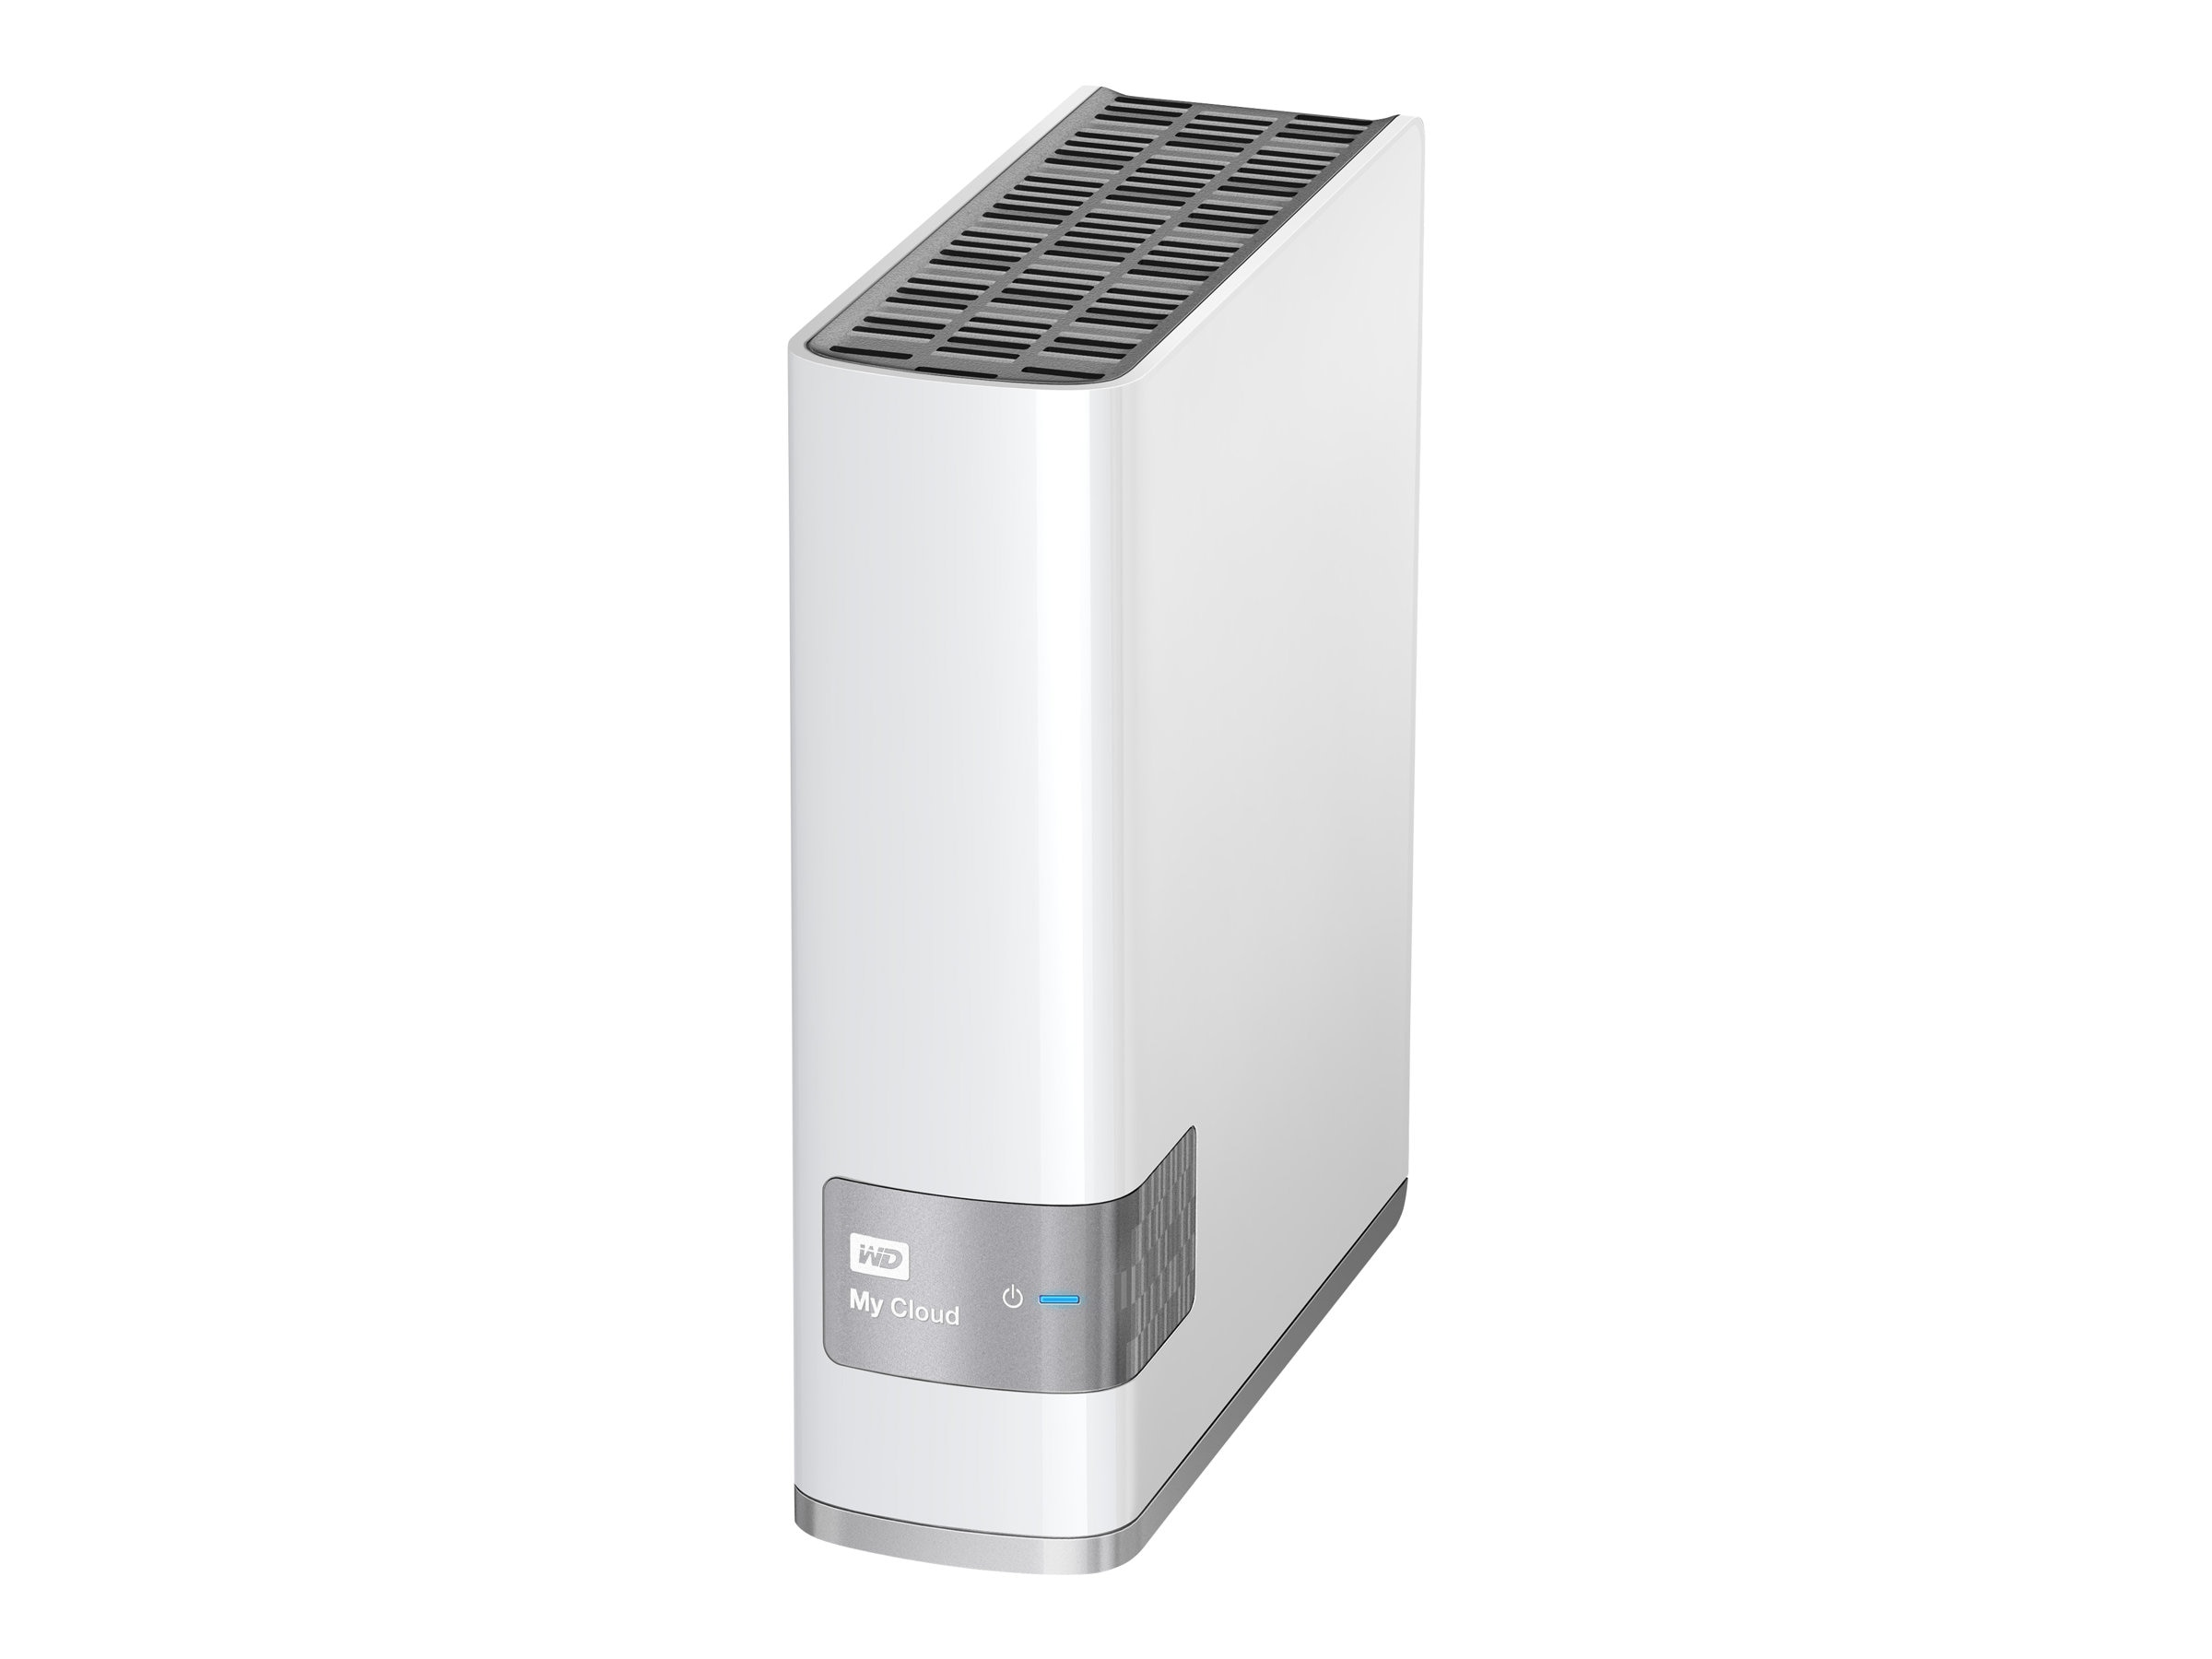 WD WD 2TB My Cloud Personal Cloud Storage, NAS, WDBCTL0020HWT-NESN, 16259869, Network Attached Storage